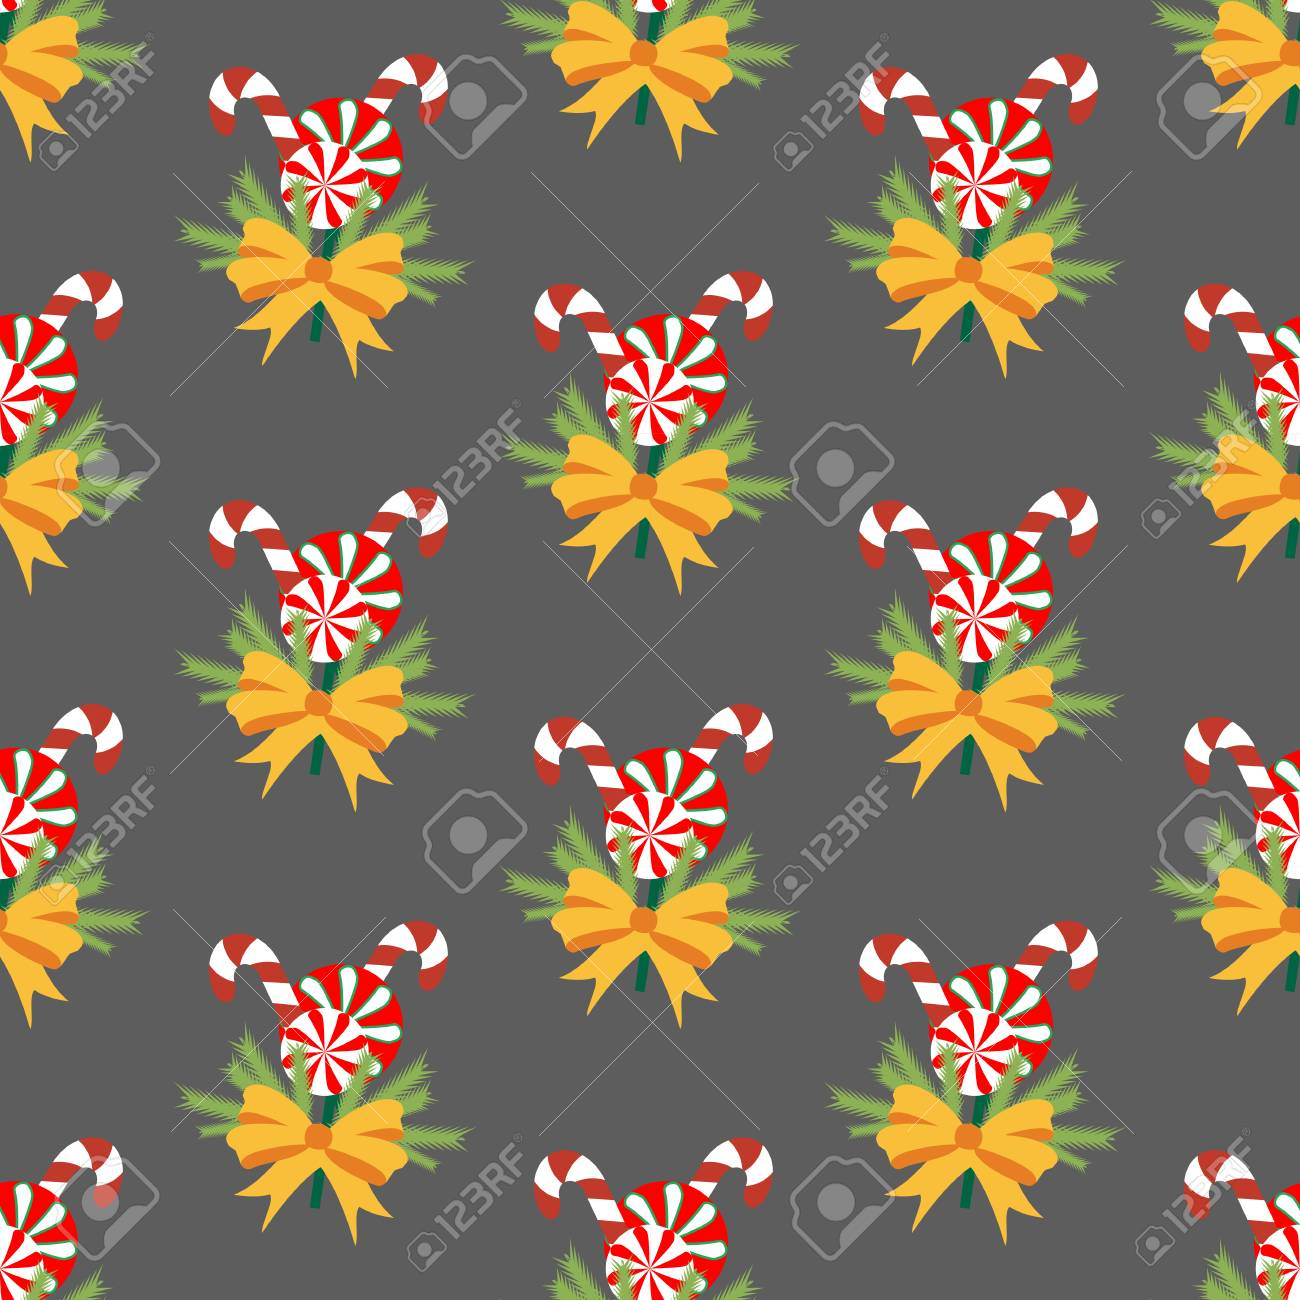 Candy Cane Pattern On The Gray Background Vector Illustration